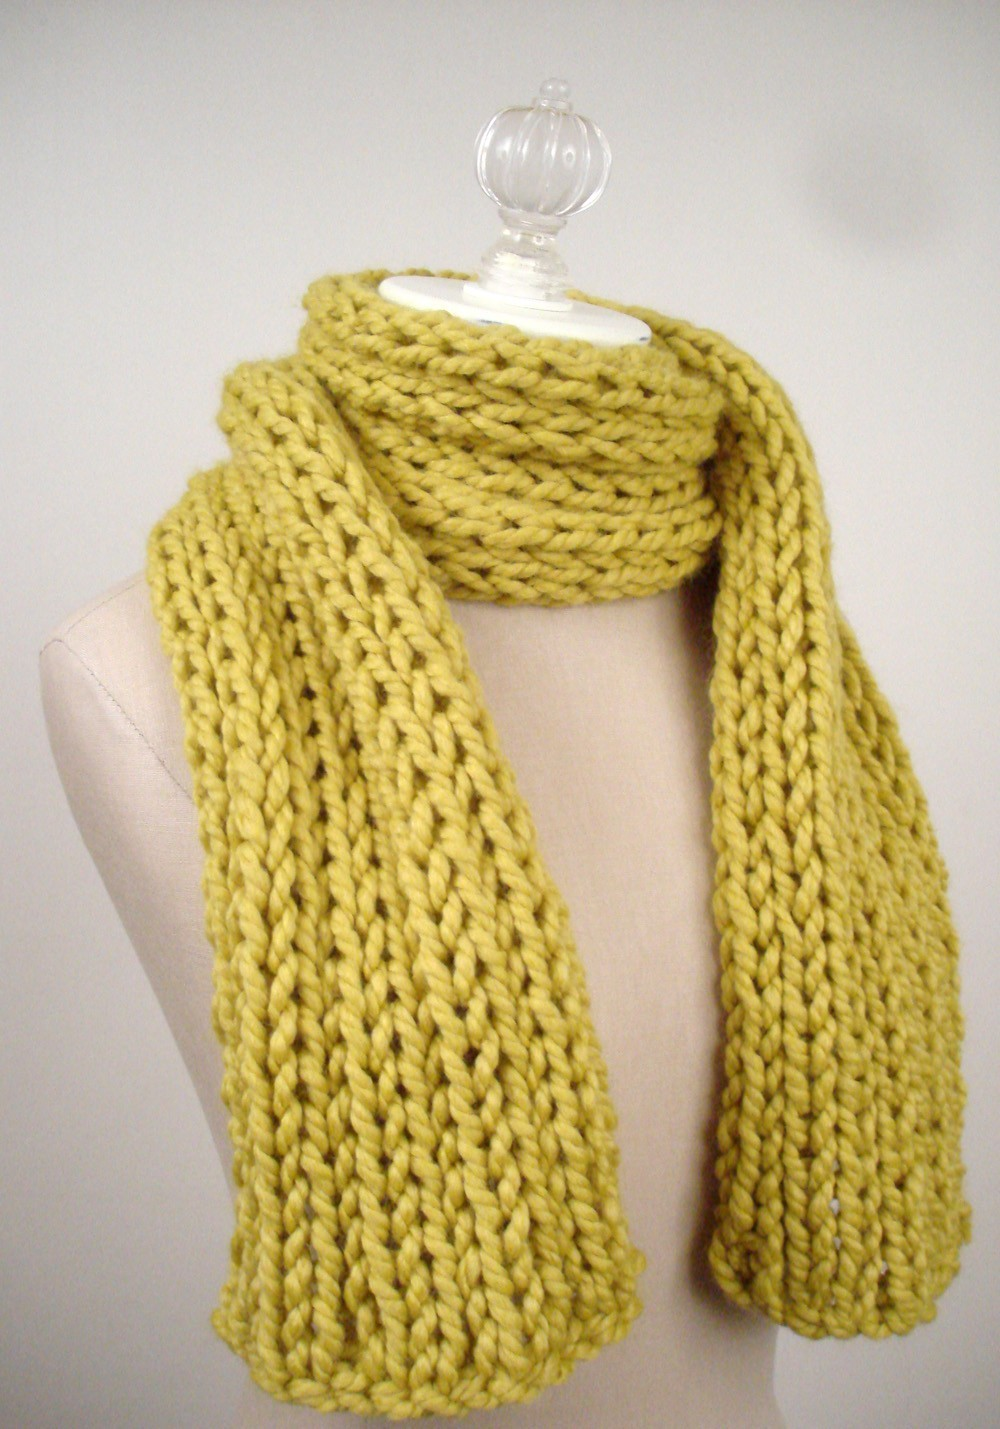 Free Patterns For Knitted Scarves : Scarf Knitting Patterns A Knitting Blog